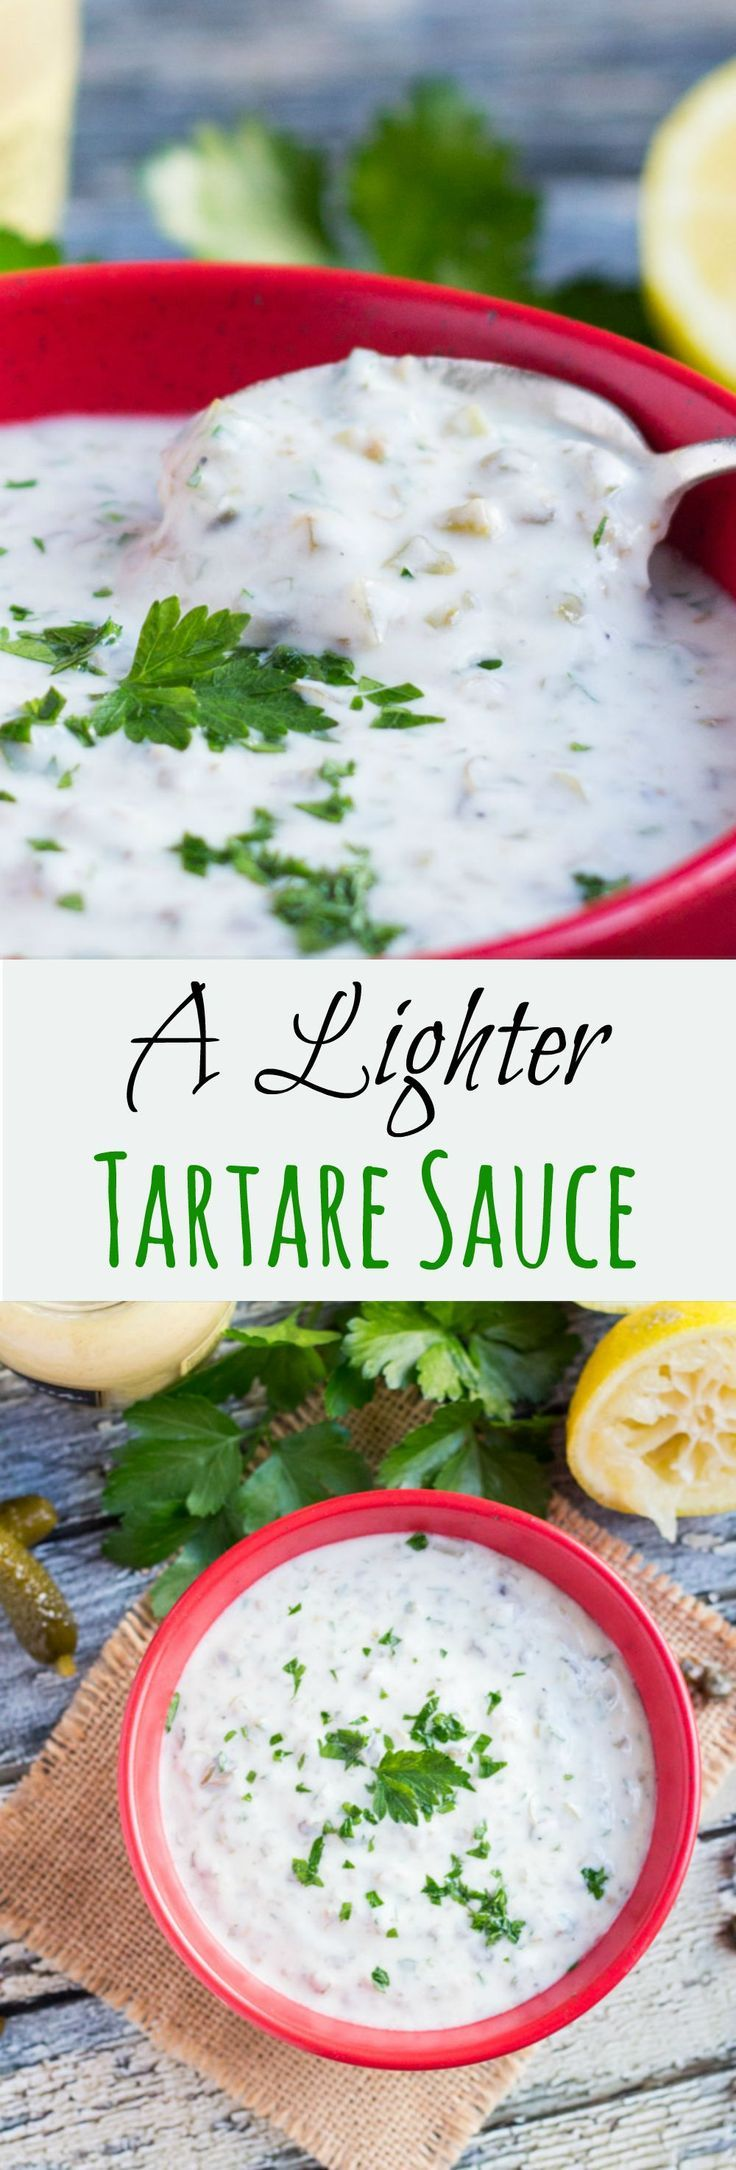 A Lighter Tartare Sauce. With yoghurt as the base, this sauce can be whipped up quickly using store cupboard ingredients.